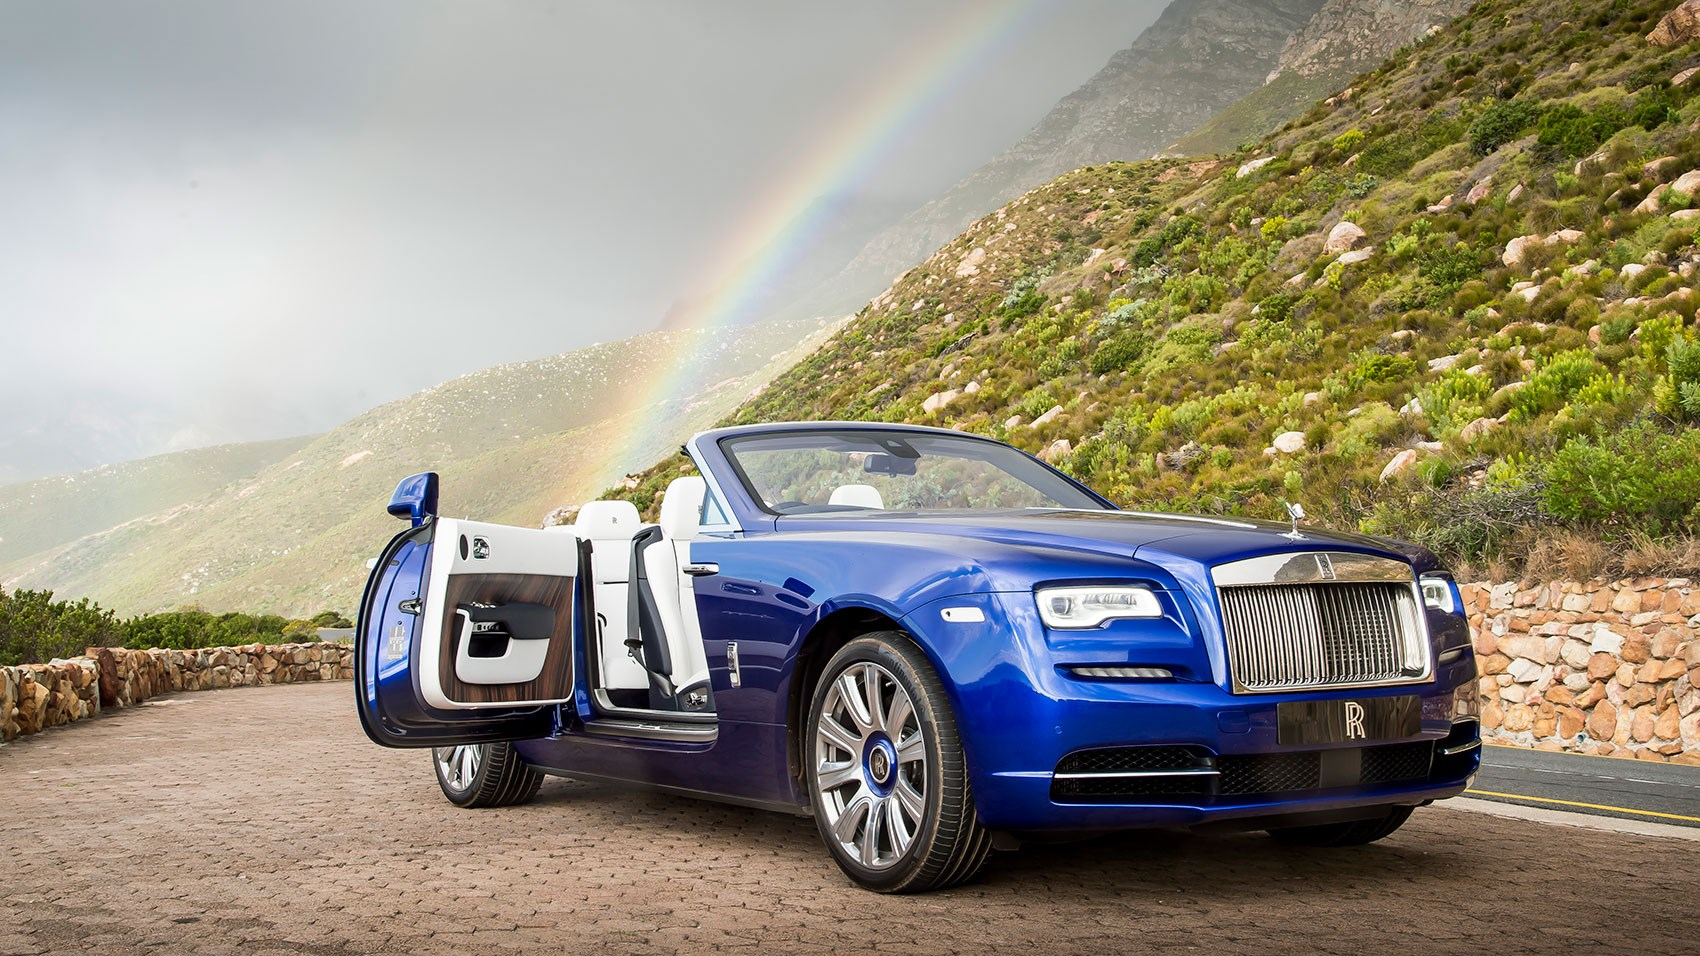 Rolls Royce Dawn 6.6 V12